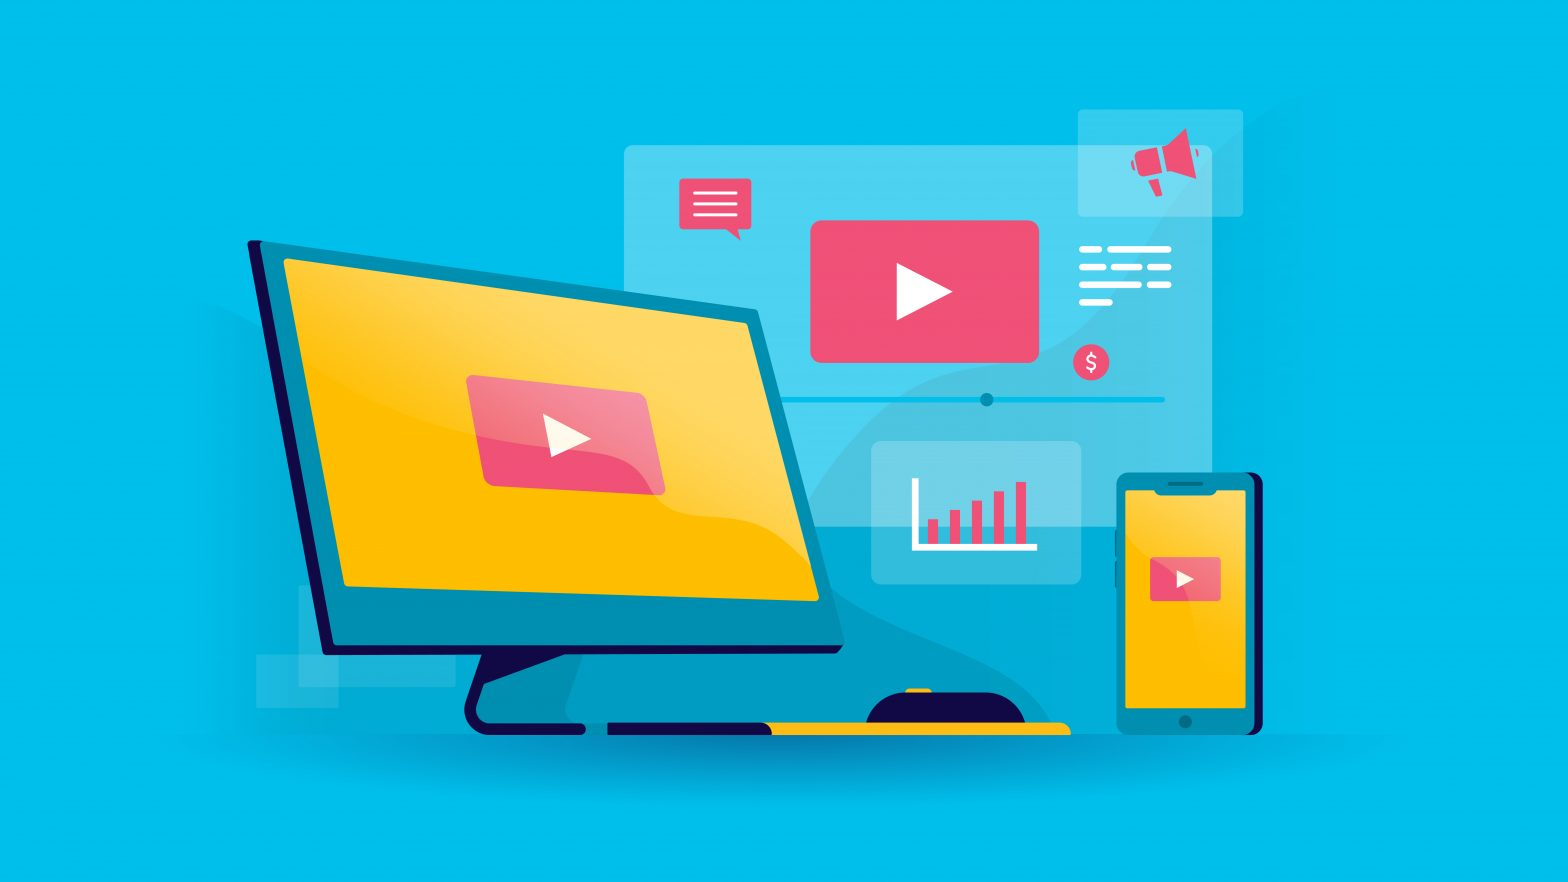 video marketing illustration with blue background color